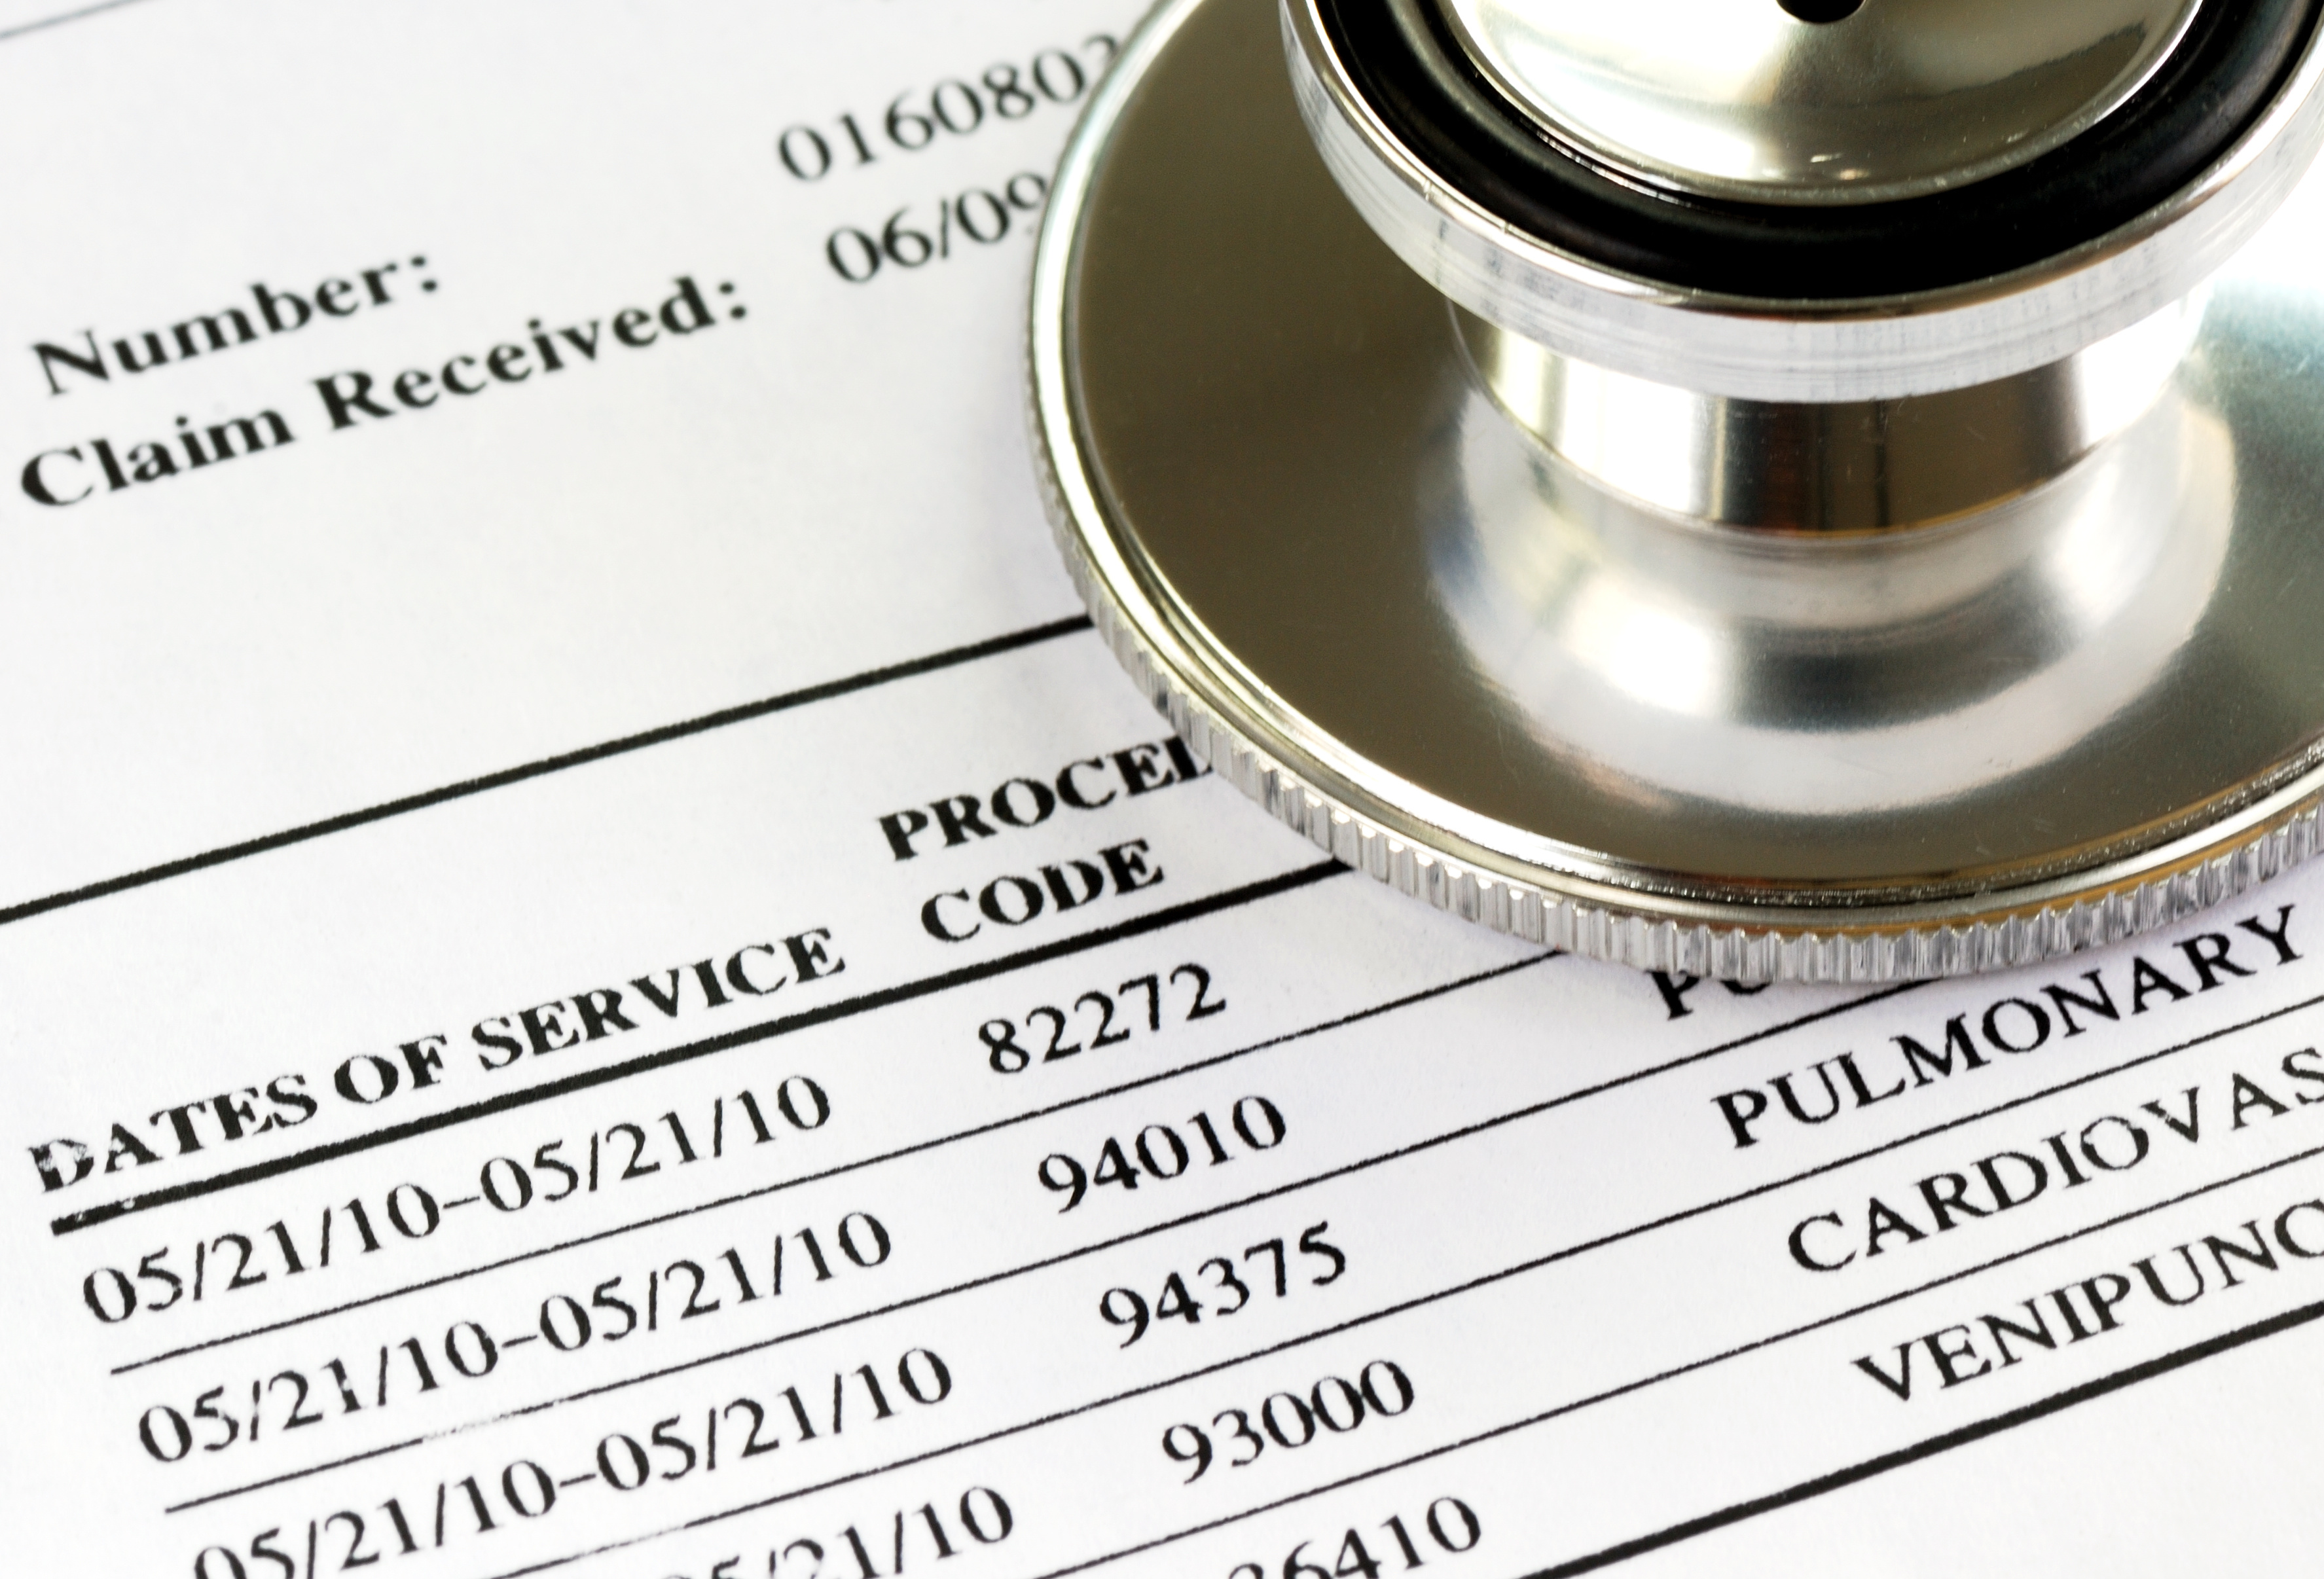 Medical Expenses Contribute To Two-Thirds Of Bankruptcy Filings In U.S. - Study Finds